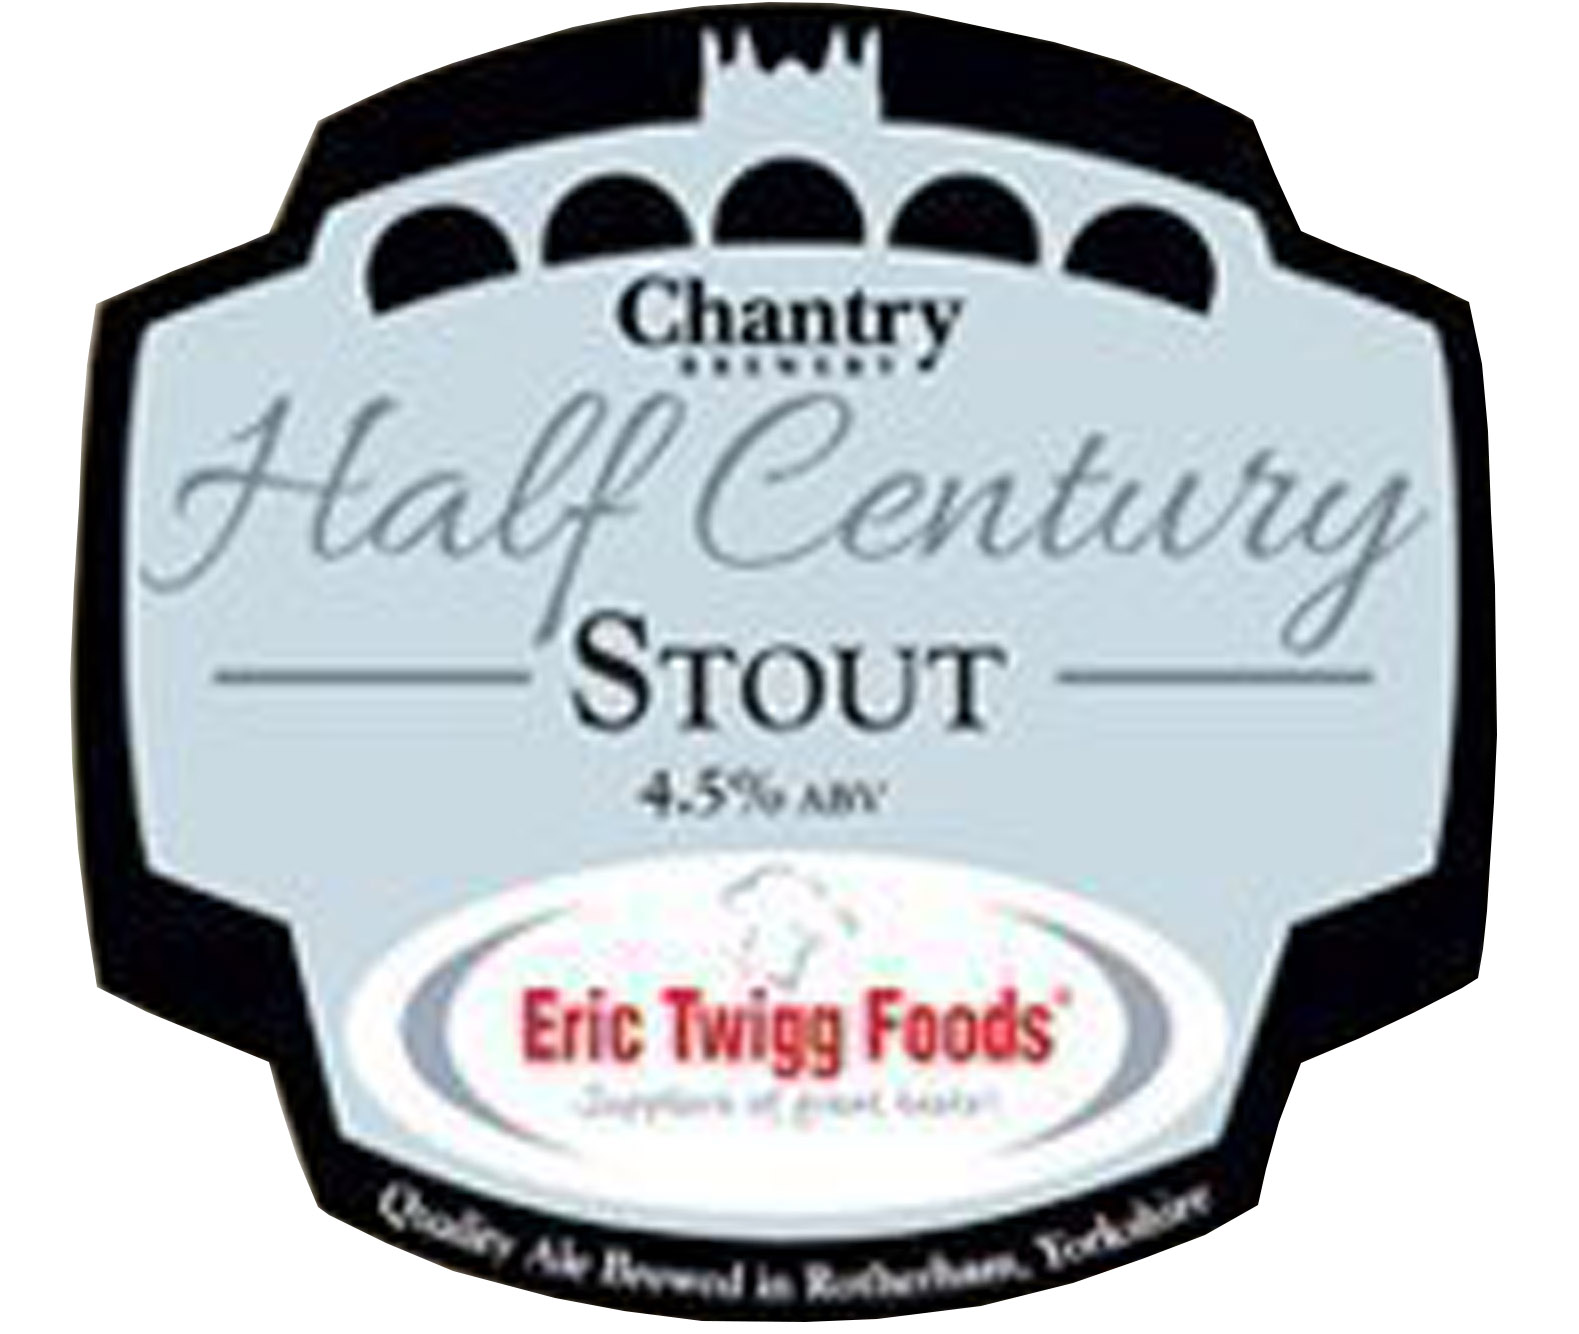 Chantry Brewery Half Century Stout